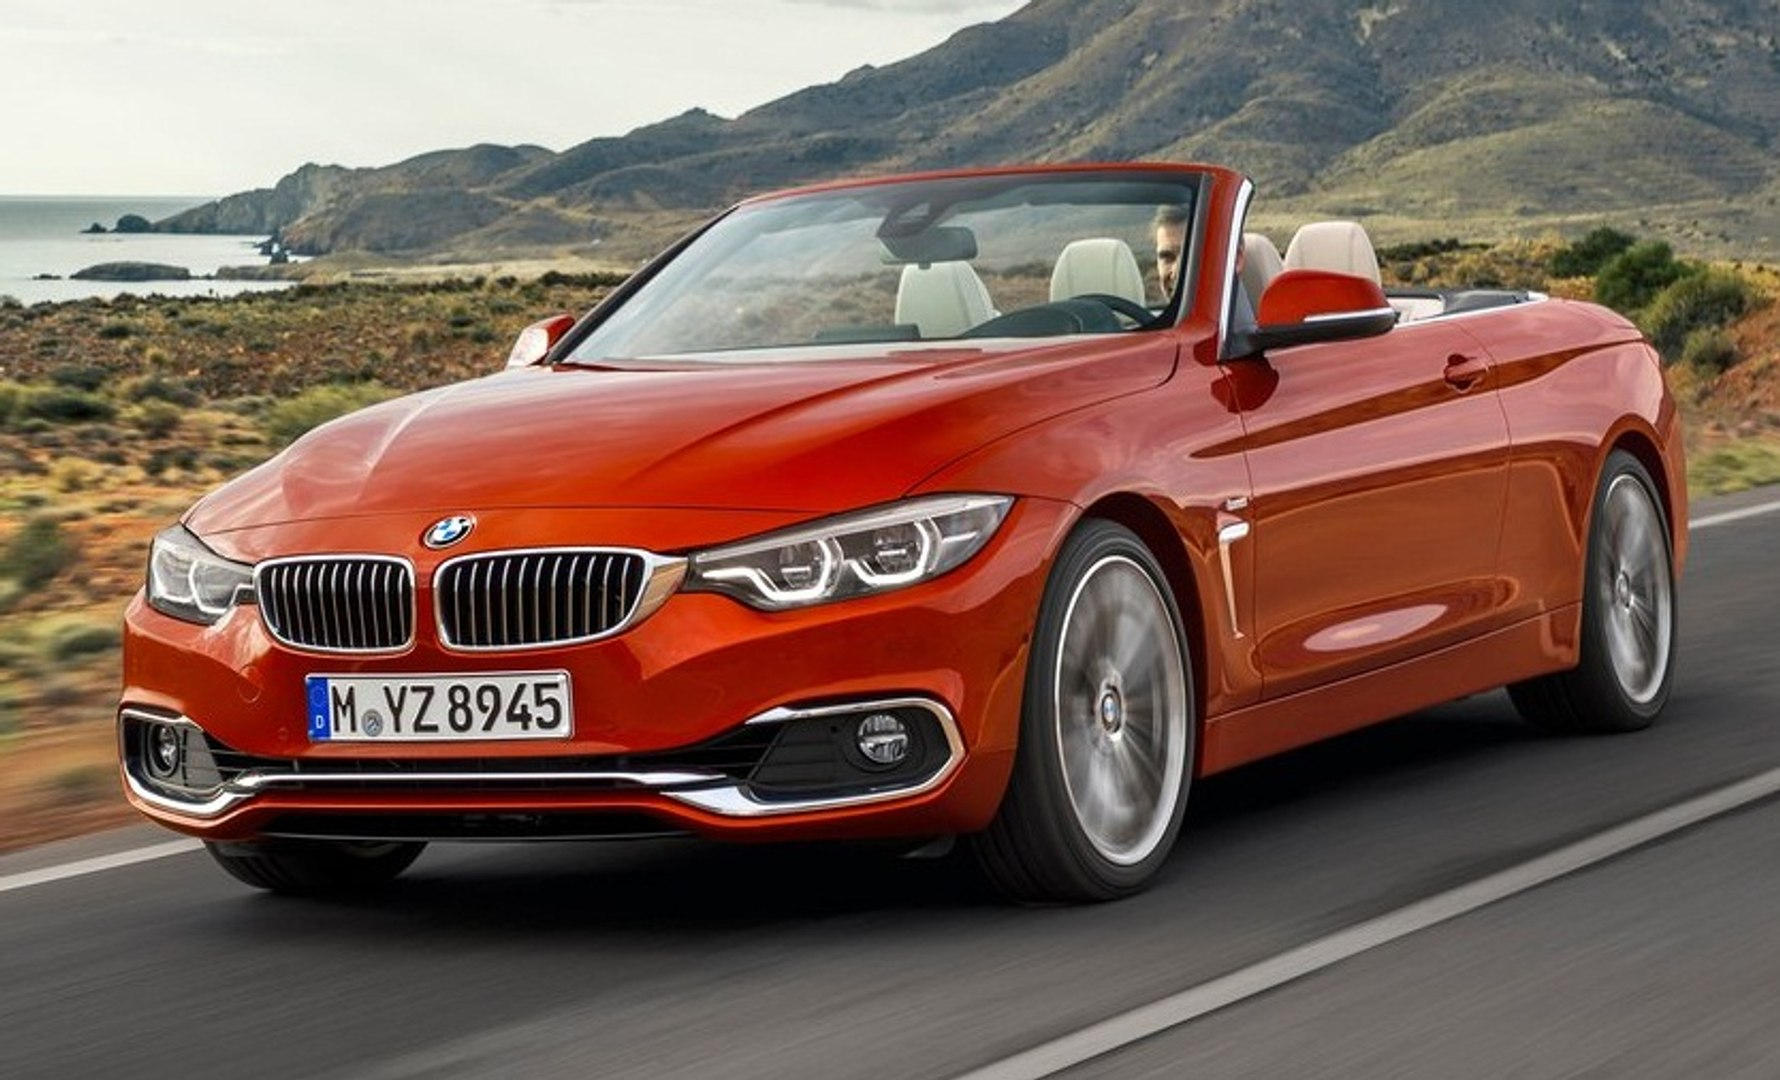 2018 Bmw 4 Series Convertible Vs Mercedes E Class Cabriolet Video Dailymotion